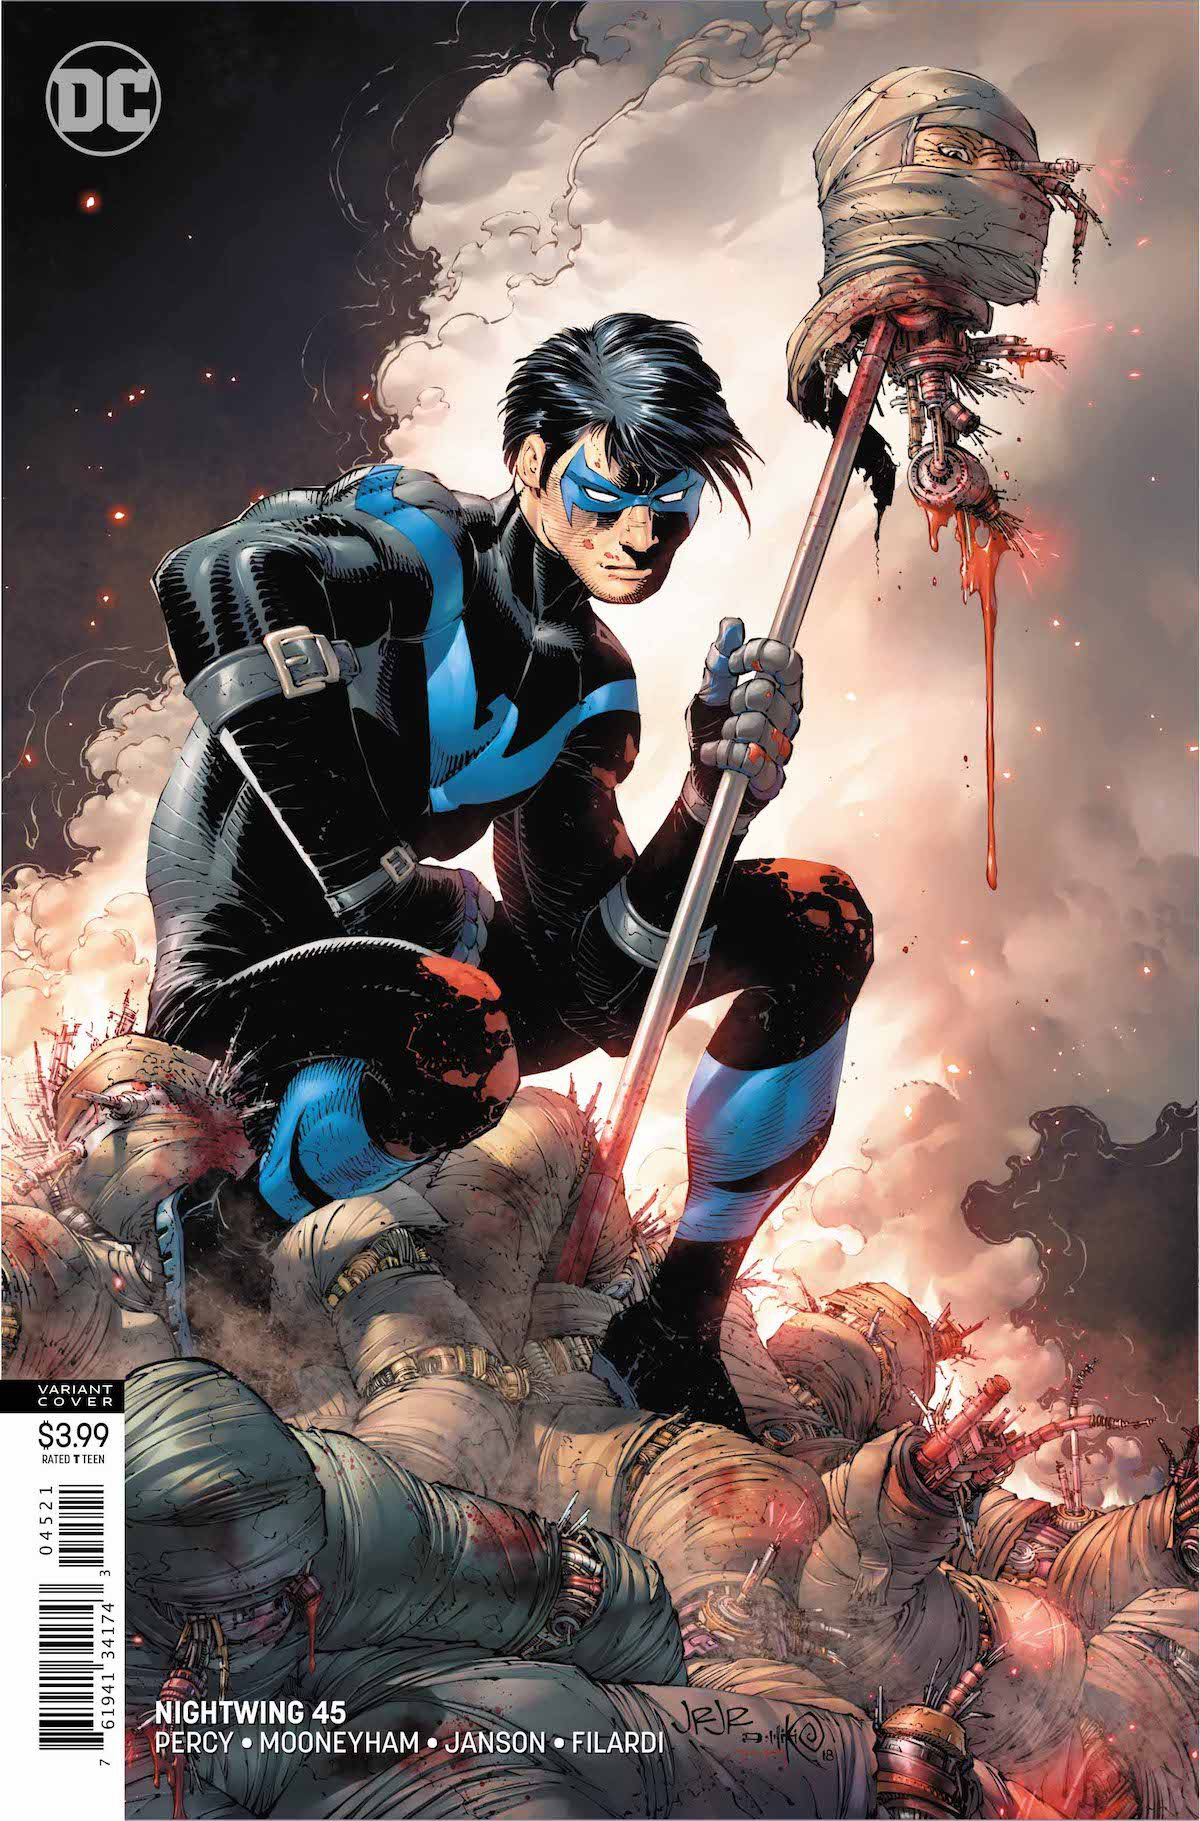 Nightwing #45 cover